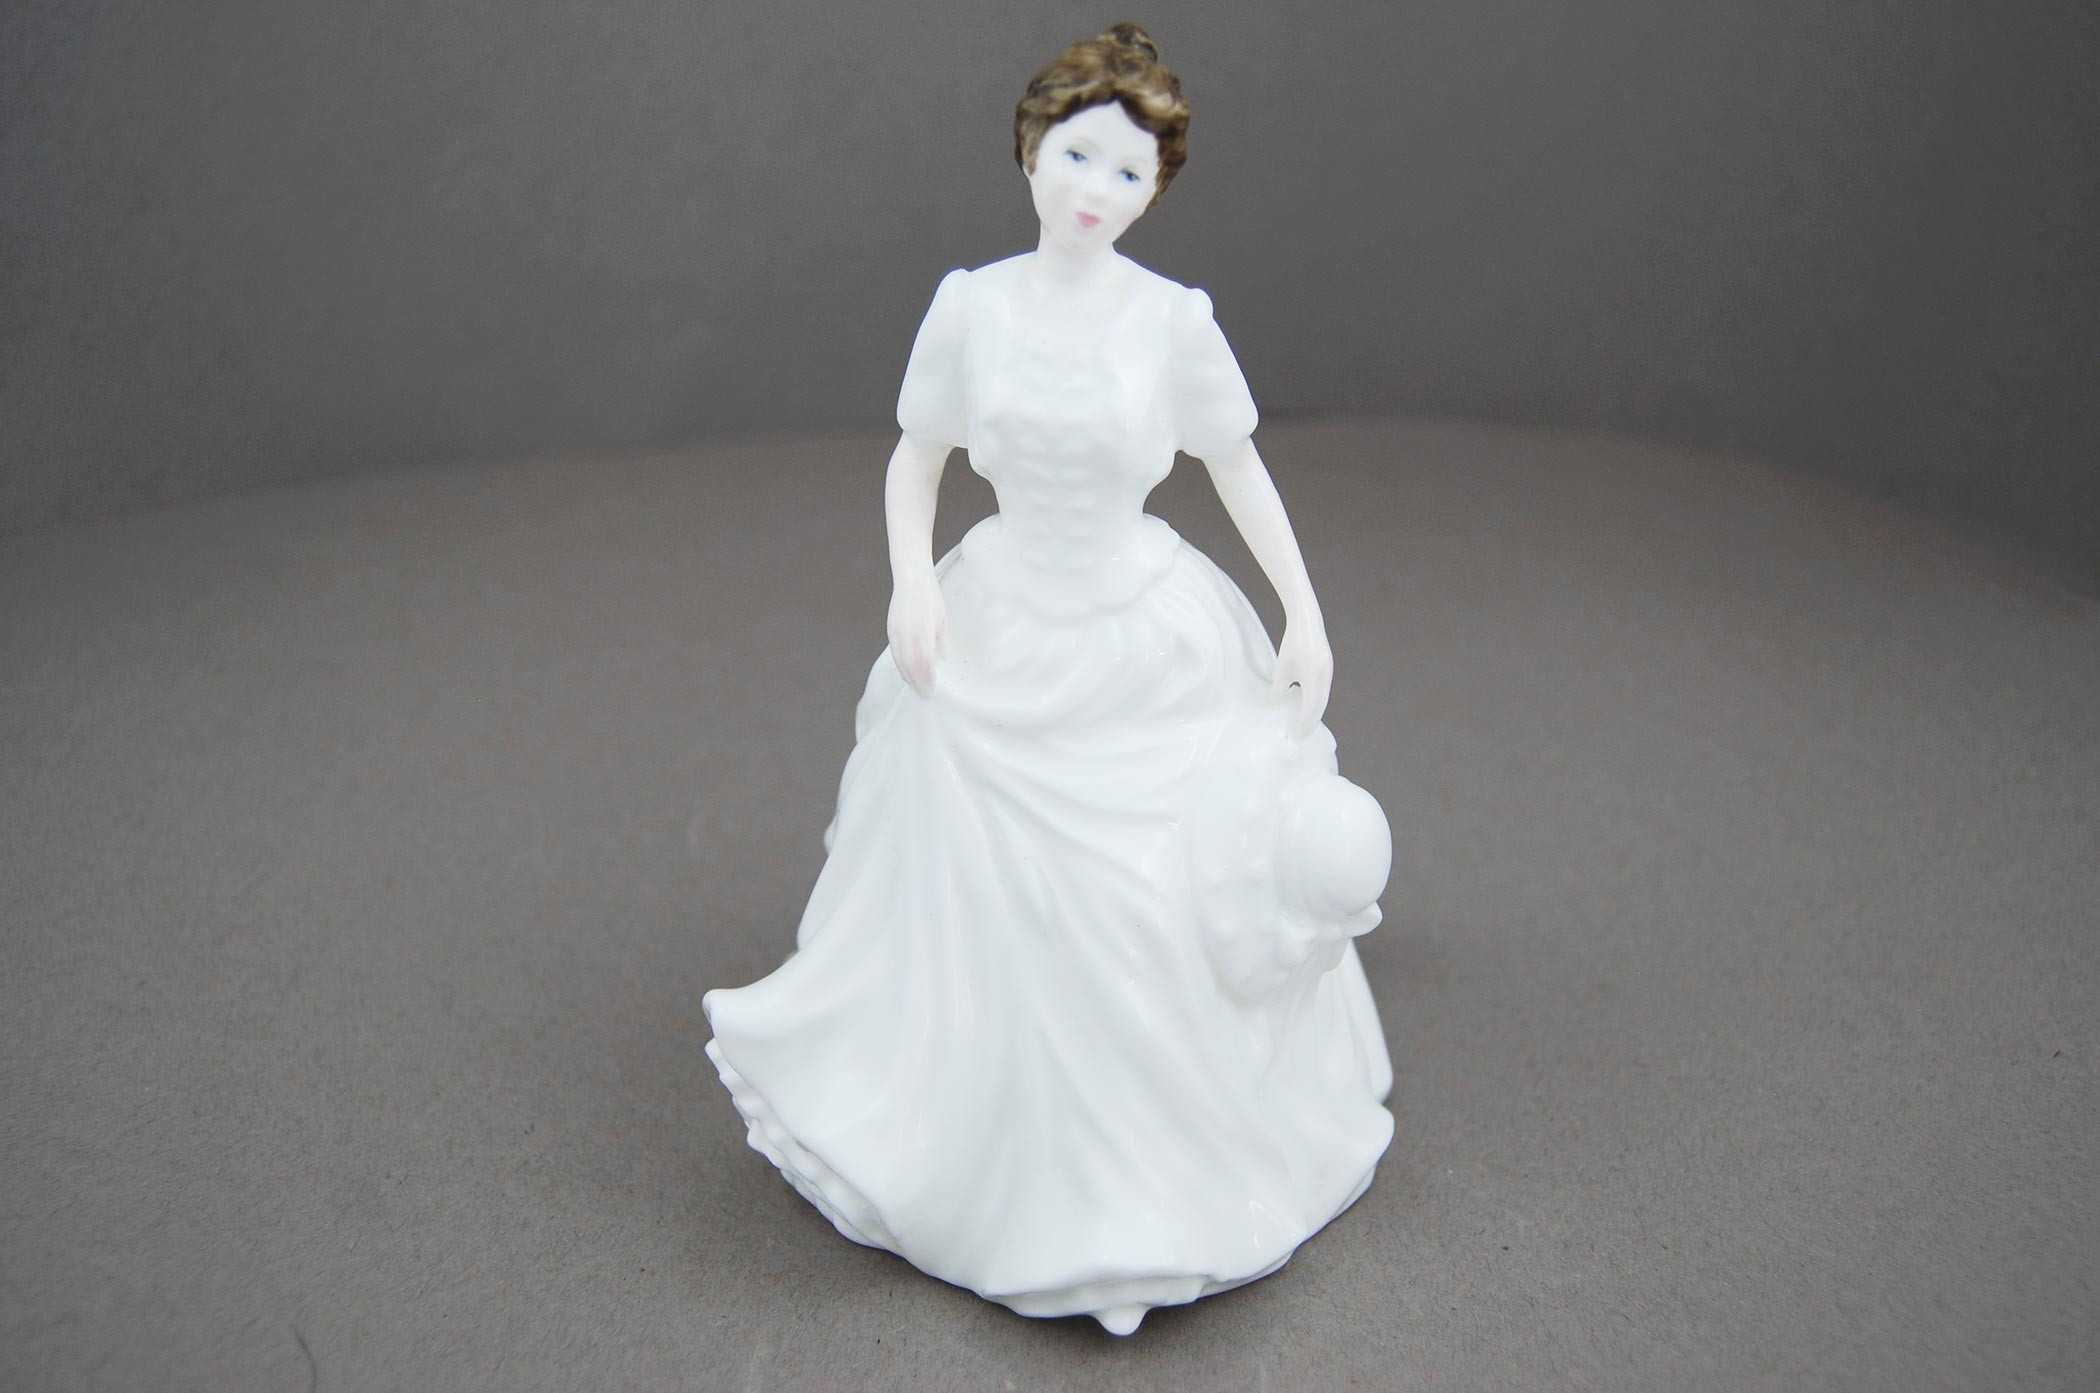 royal doulton juliet vase of royal doulton harmony figurine china find regarding royal doulton harmony figurine